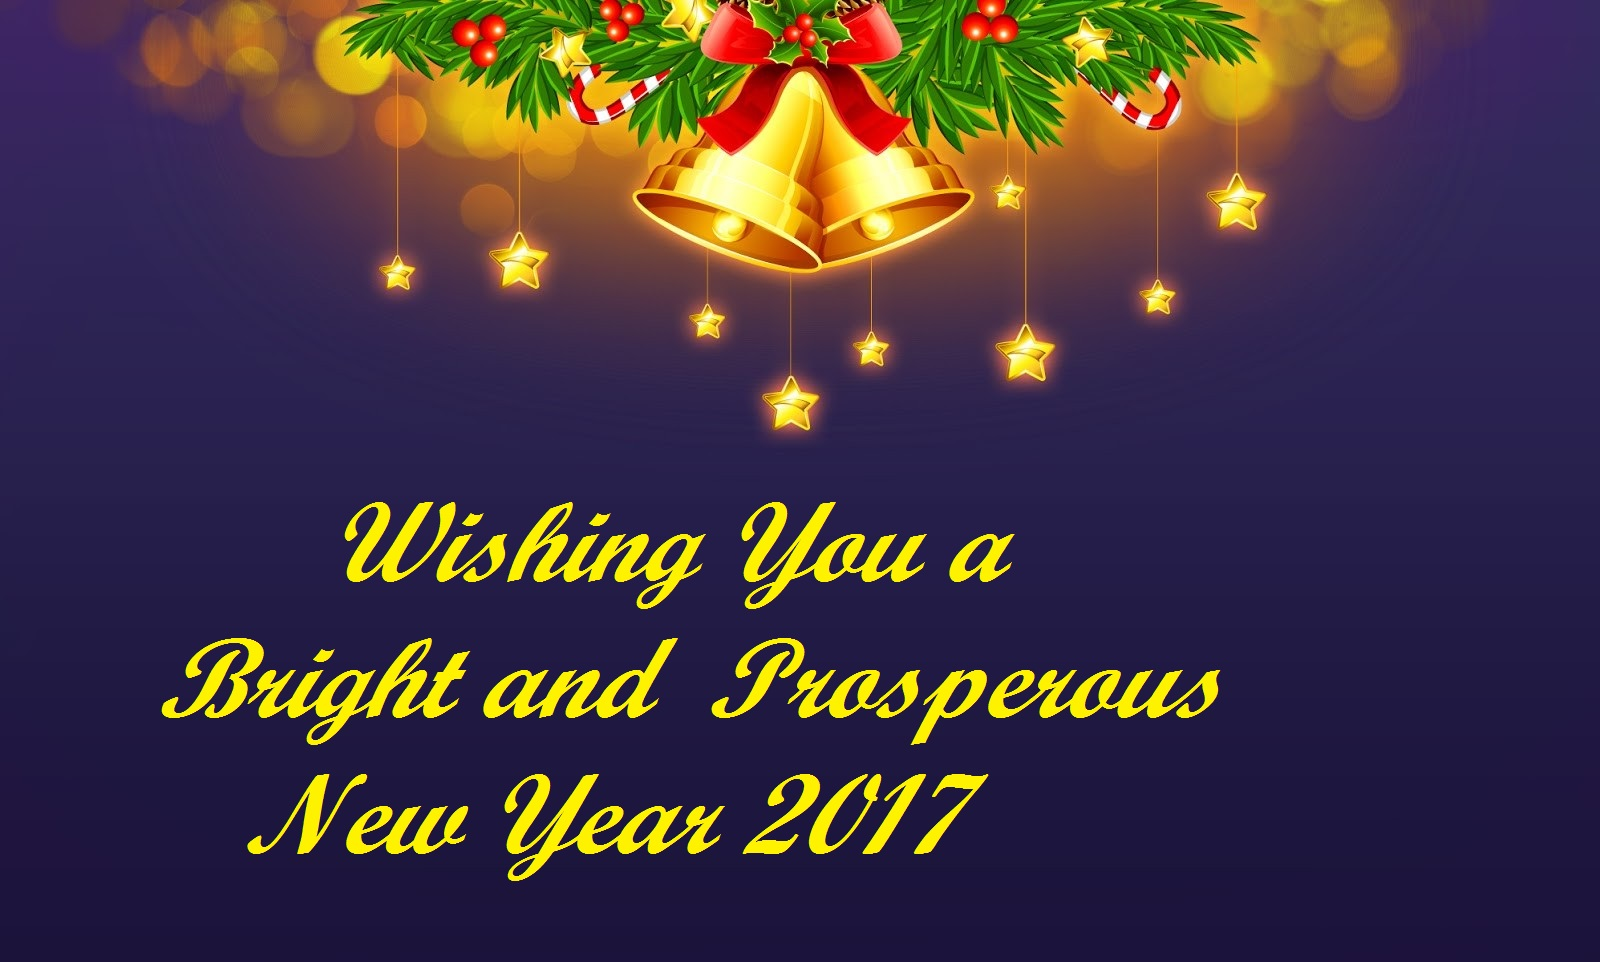 New Year Greeting Cards Images & Wallpapers 2017 - Events Today